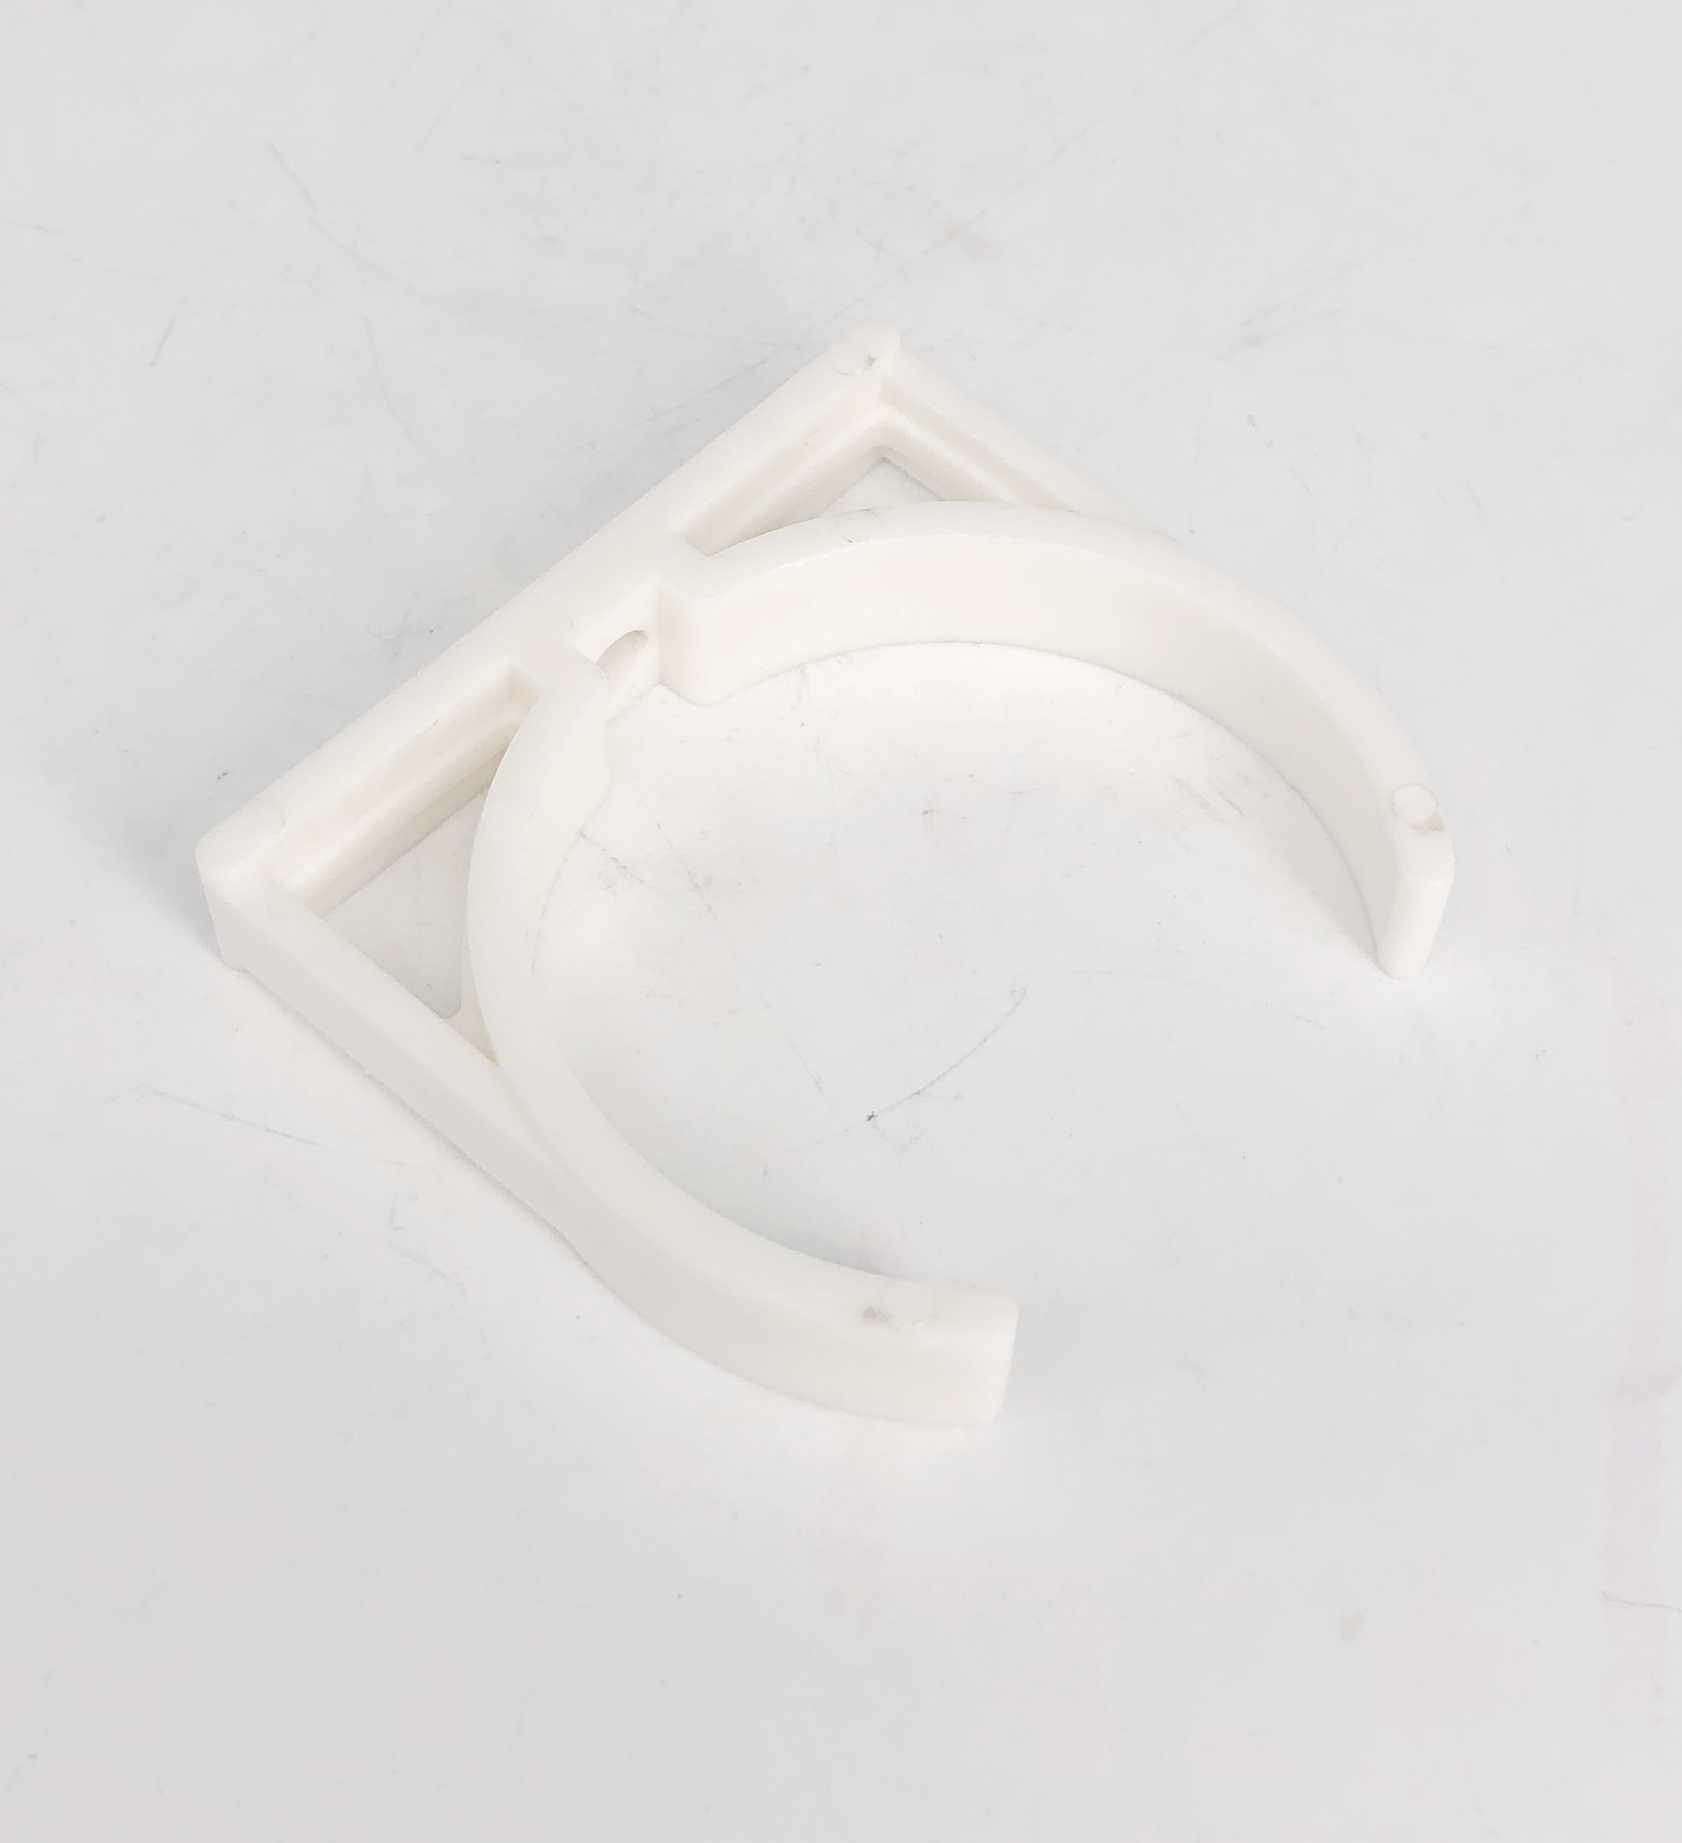 I/D 55mm Big Clip Reverse Osmosis RO Water Accessory Membrane Housing Clip Like T33 Filter Cartridge